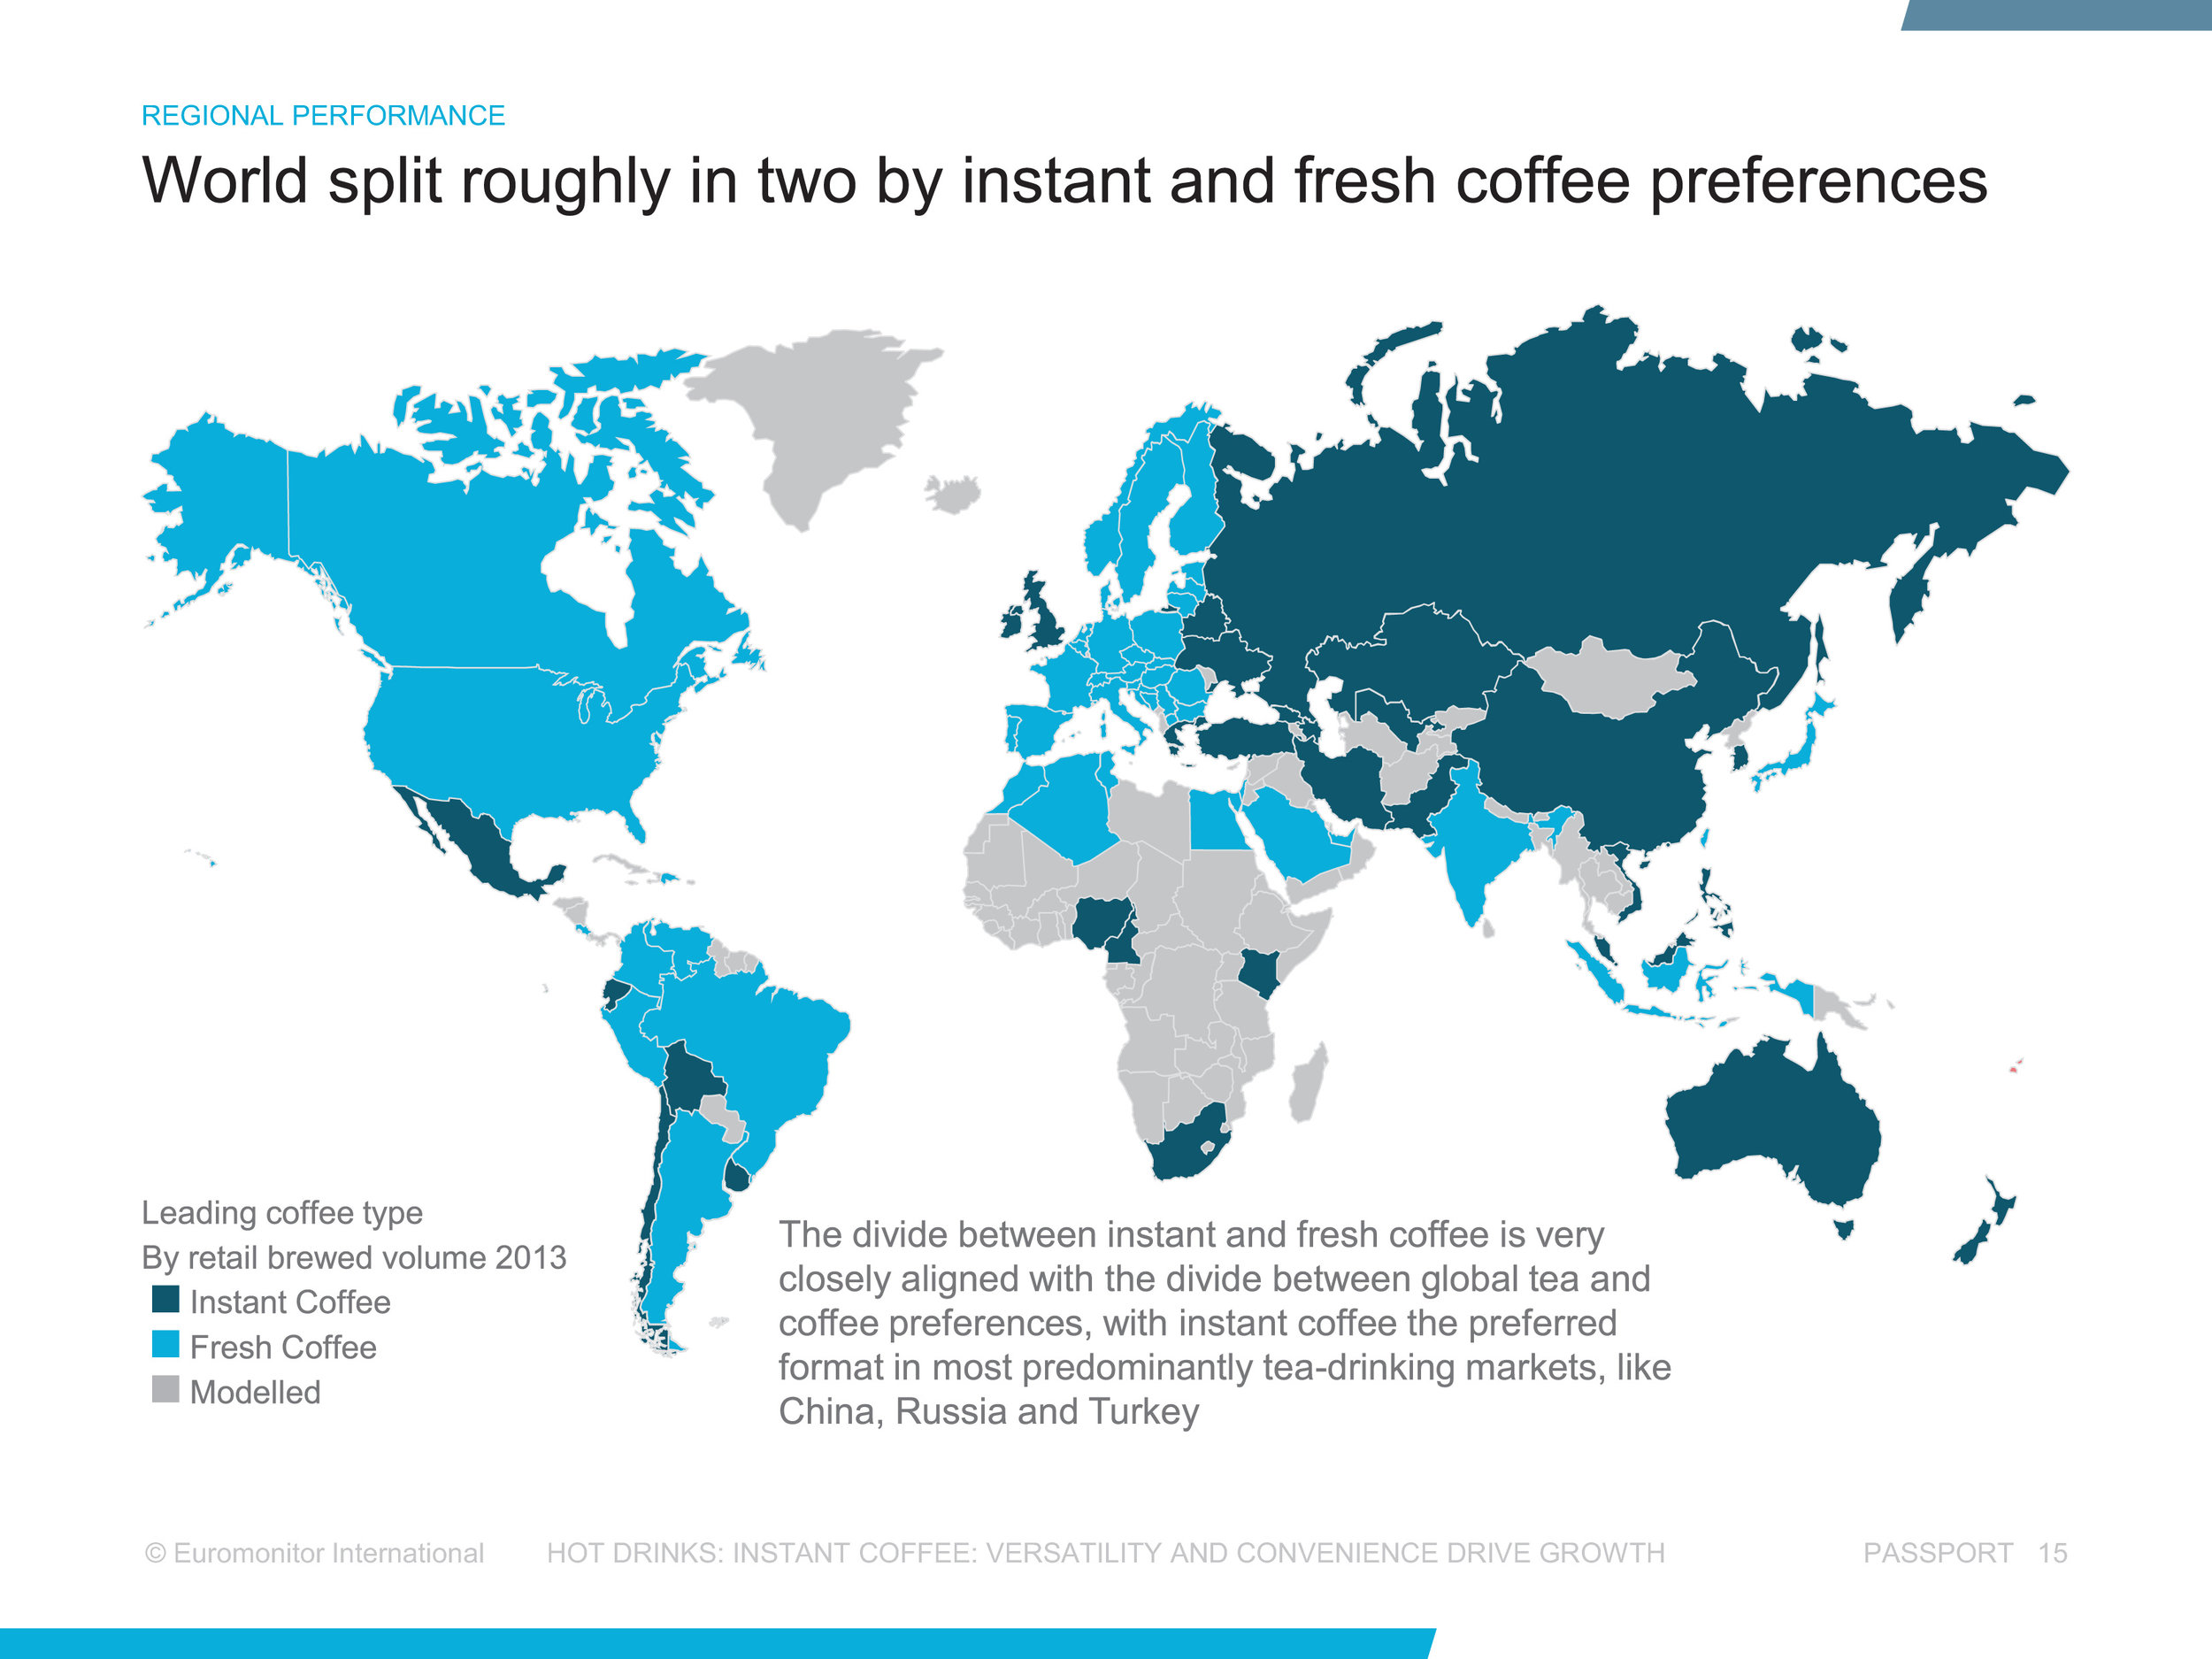 instant-fresh-coffee-map-euromonitor.jpg